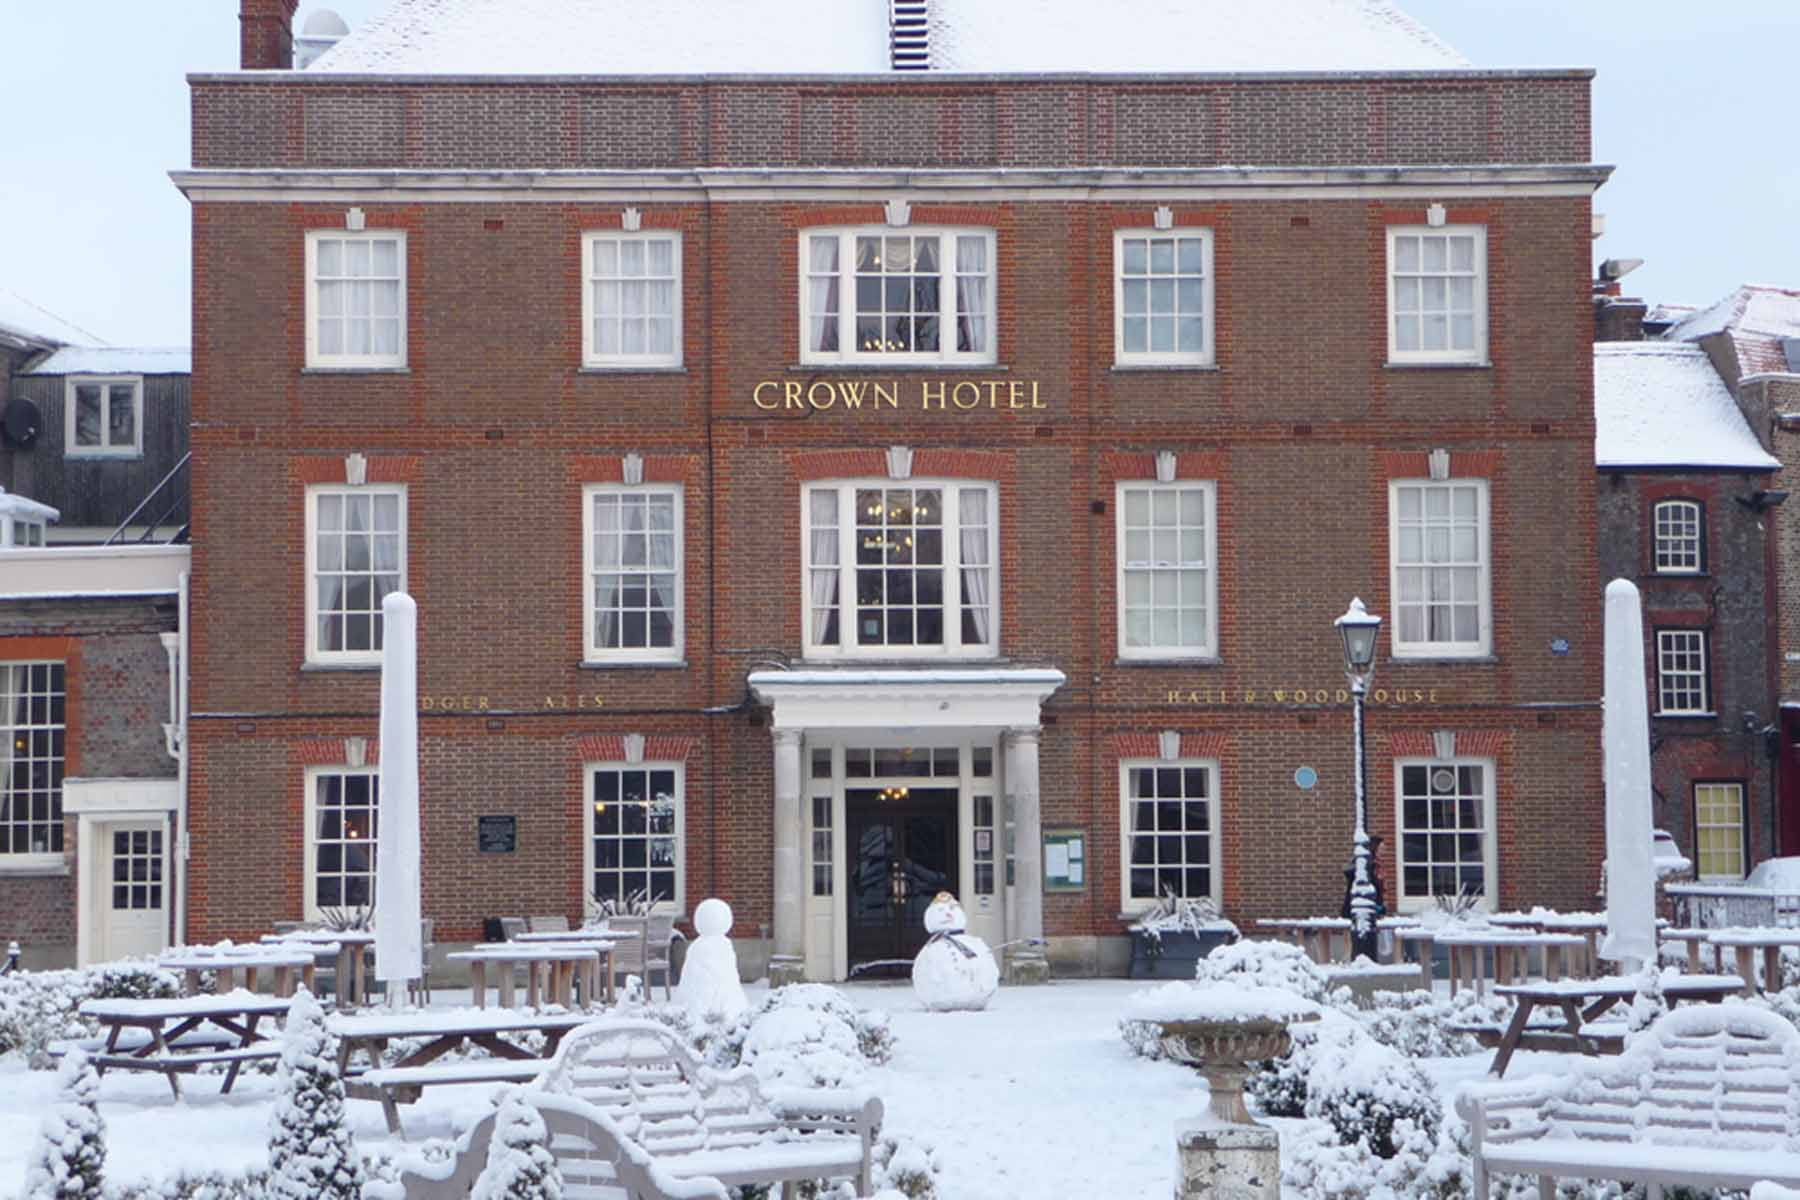 Blandford in the snow -  Snowmen visit the Crown Hotel